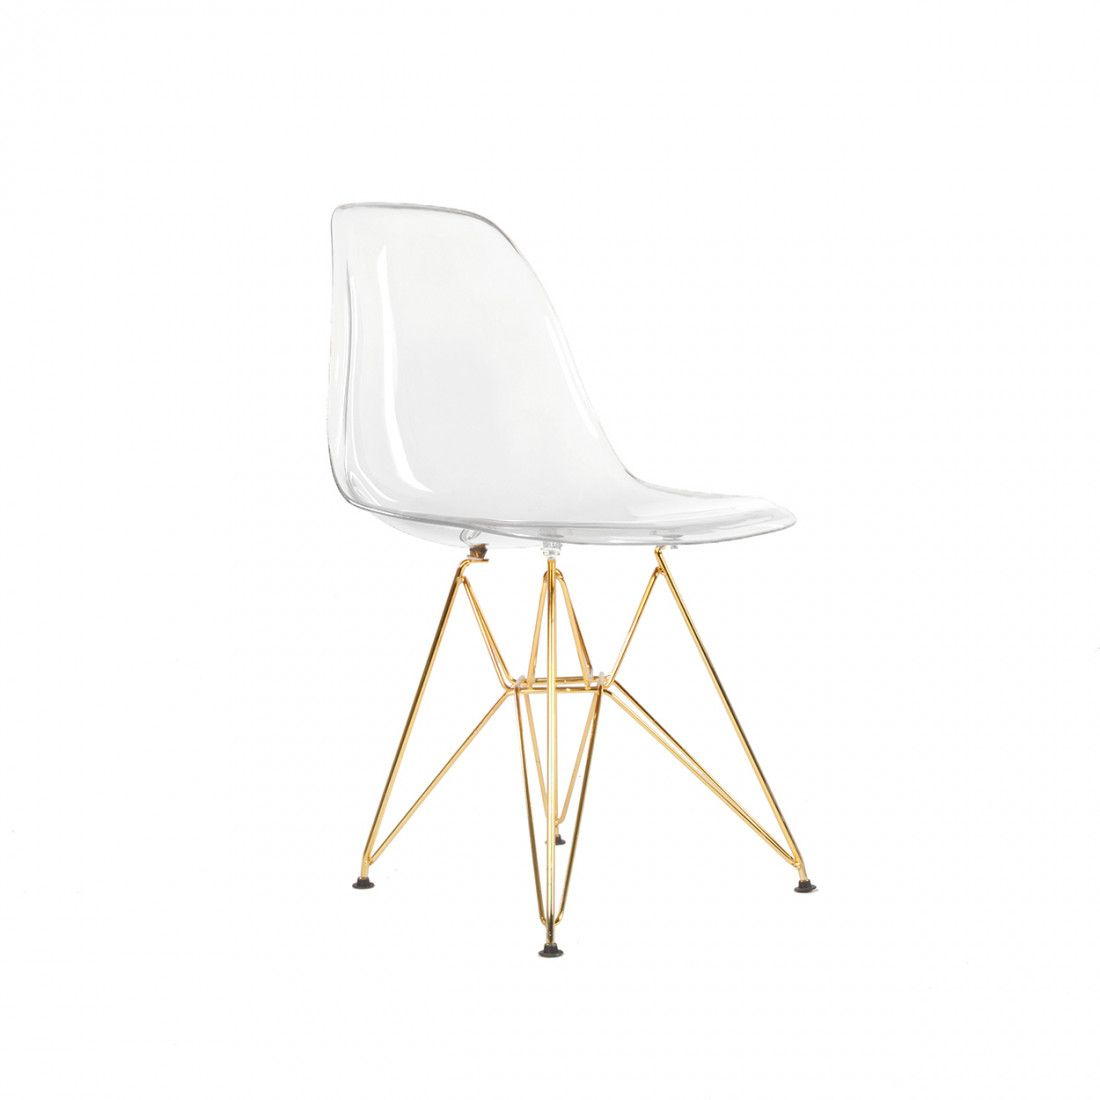 Clear Acrylic Chair Dsr Plastic Molded Eiffel Dining Chair Gold Legs And